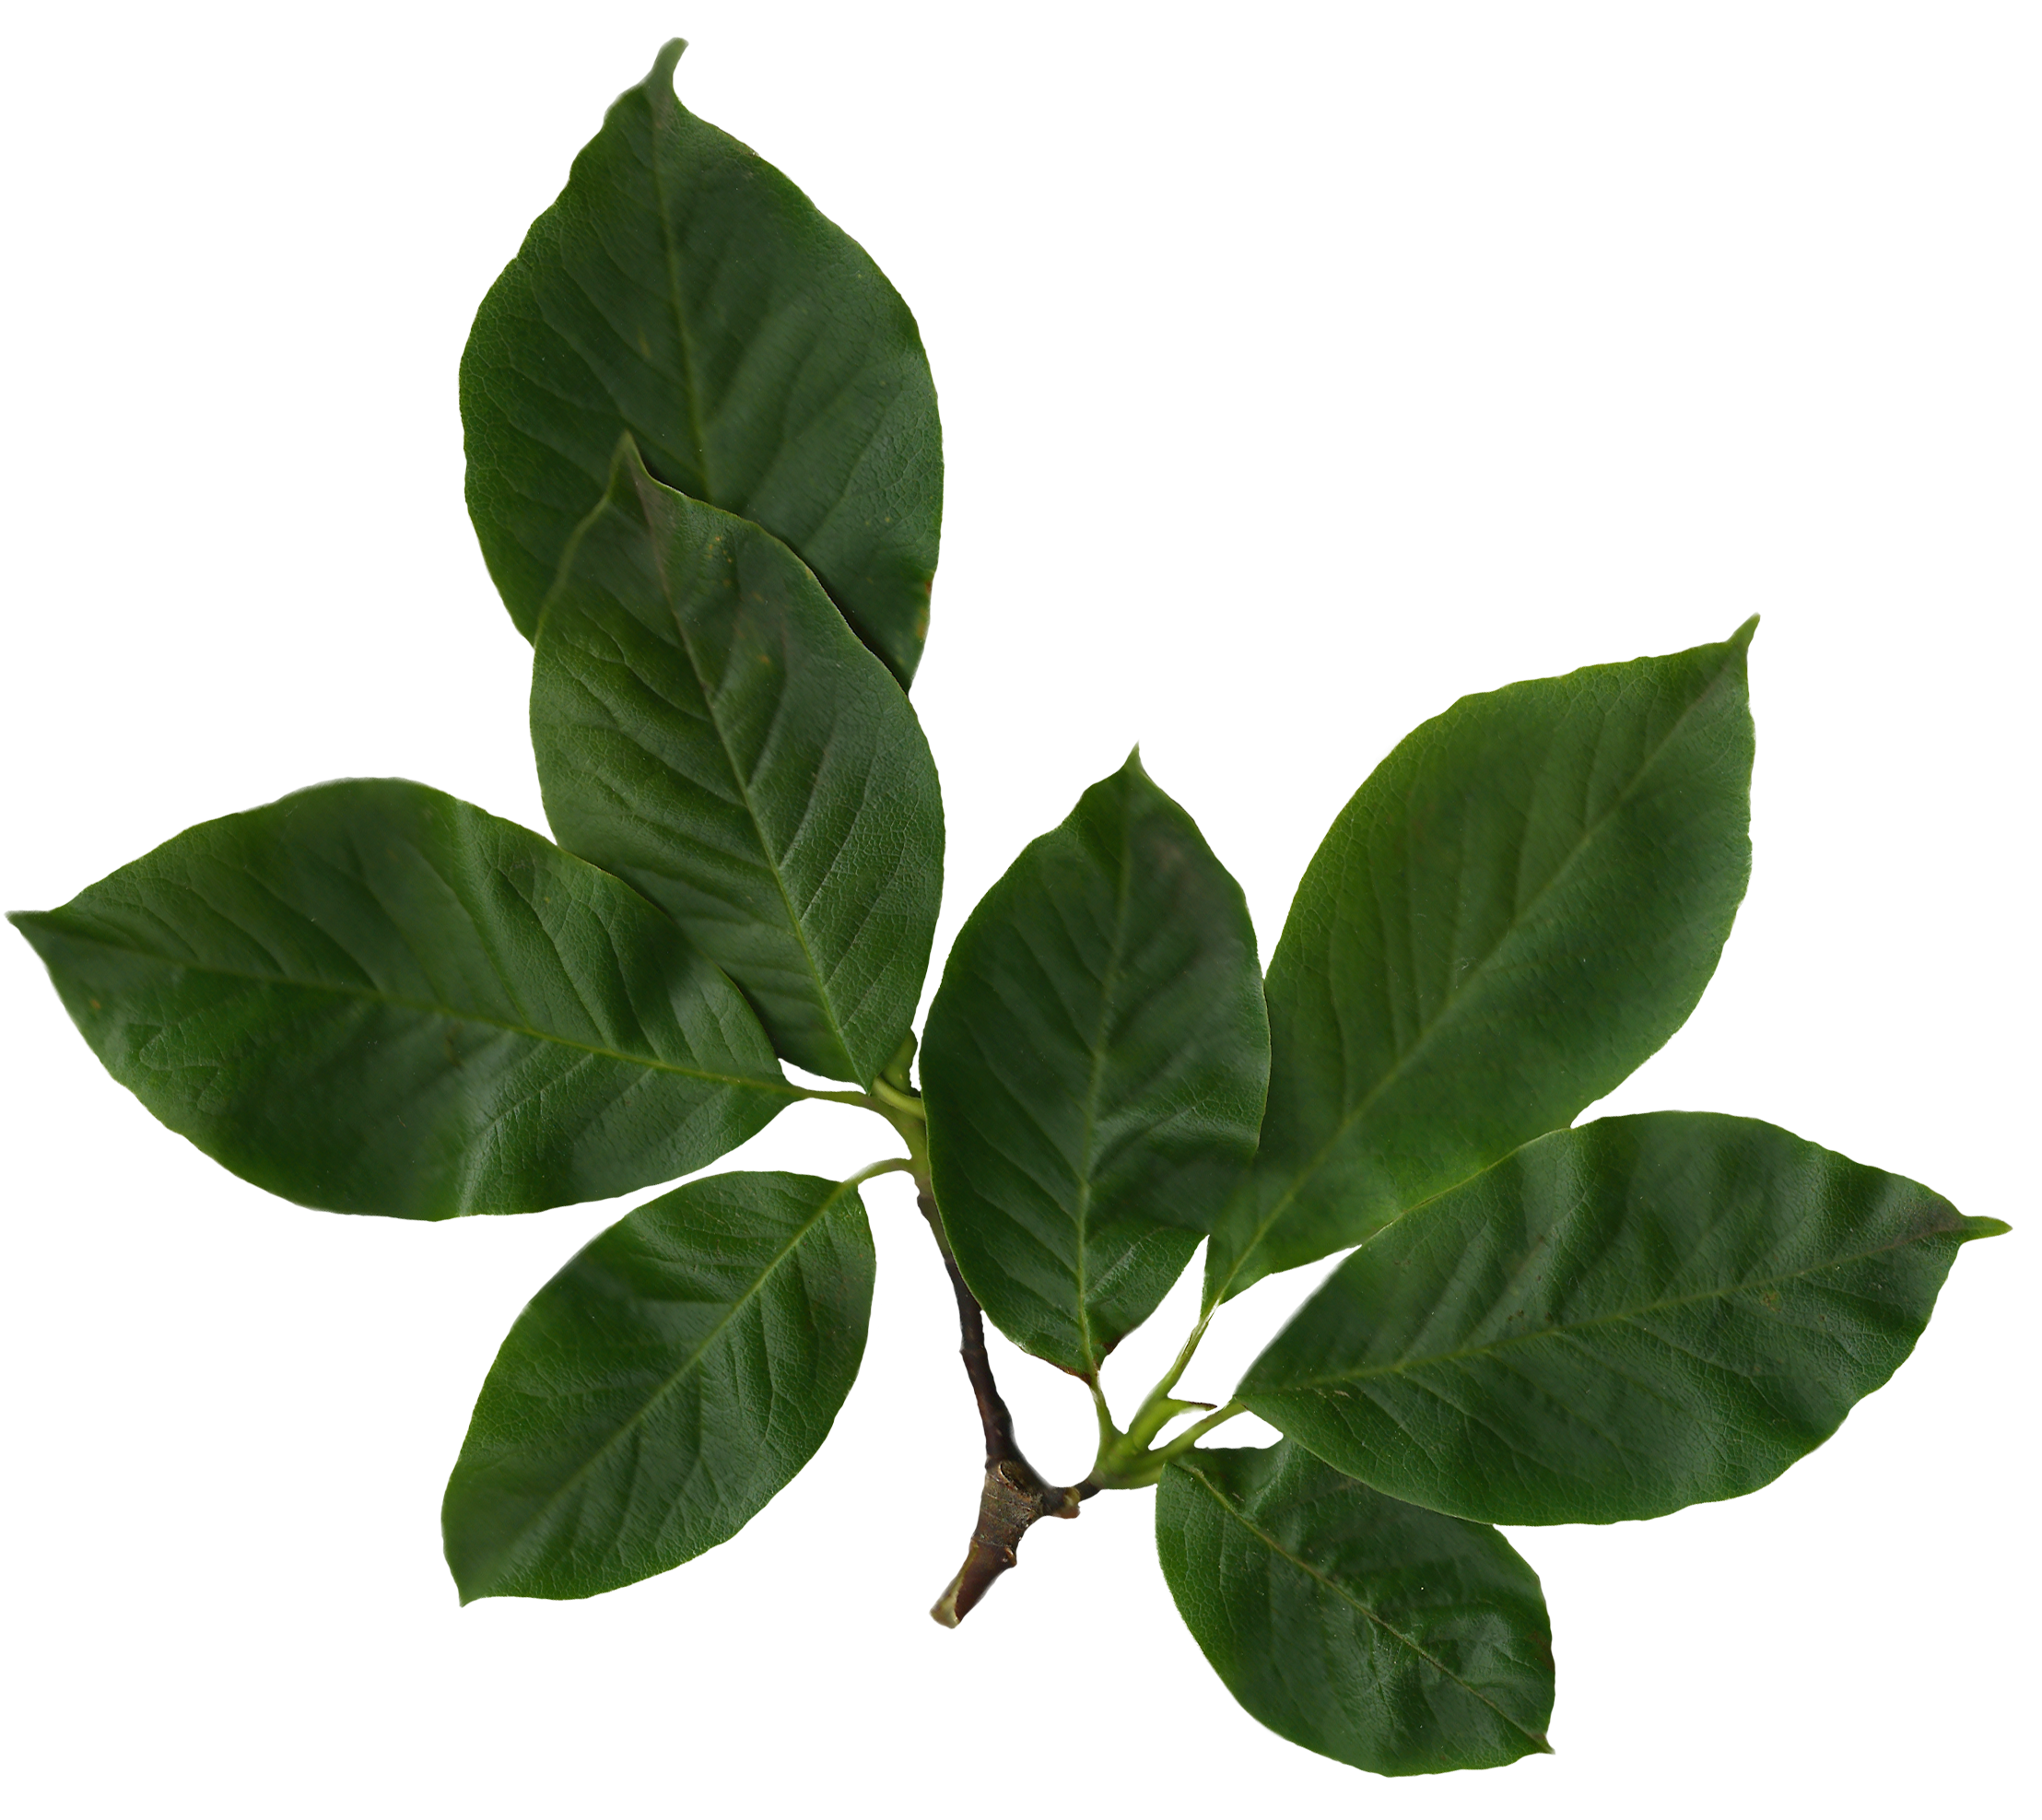 File:magnolia Soulangiana Scanned Leaves.png - Leaves, Transparent background PNG HD thumbnail